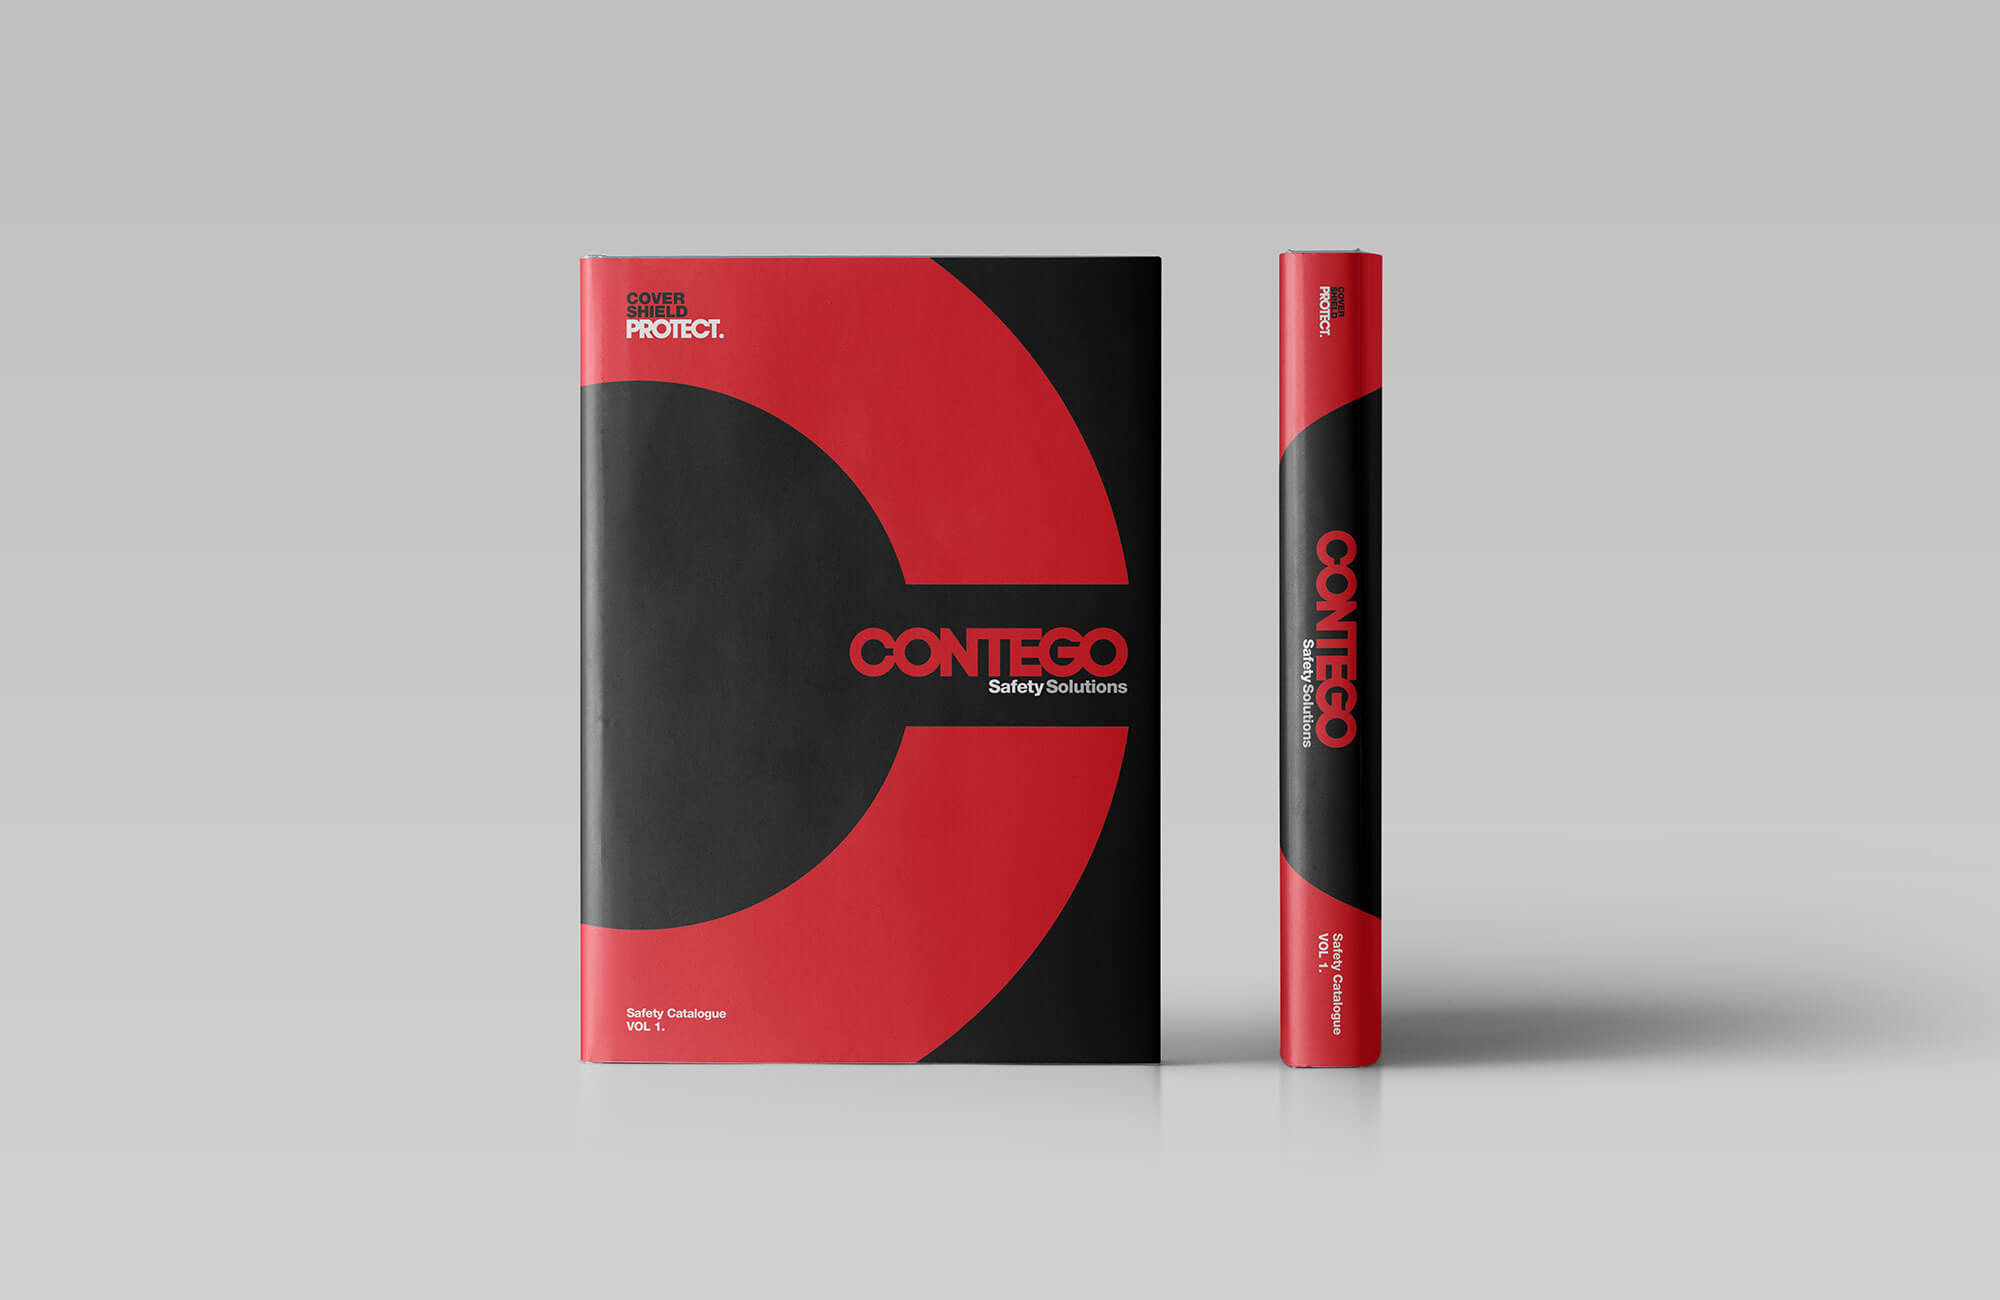 Contego Catalogue Cover Design Concept